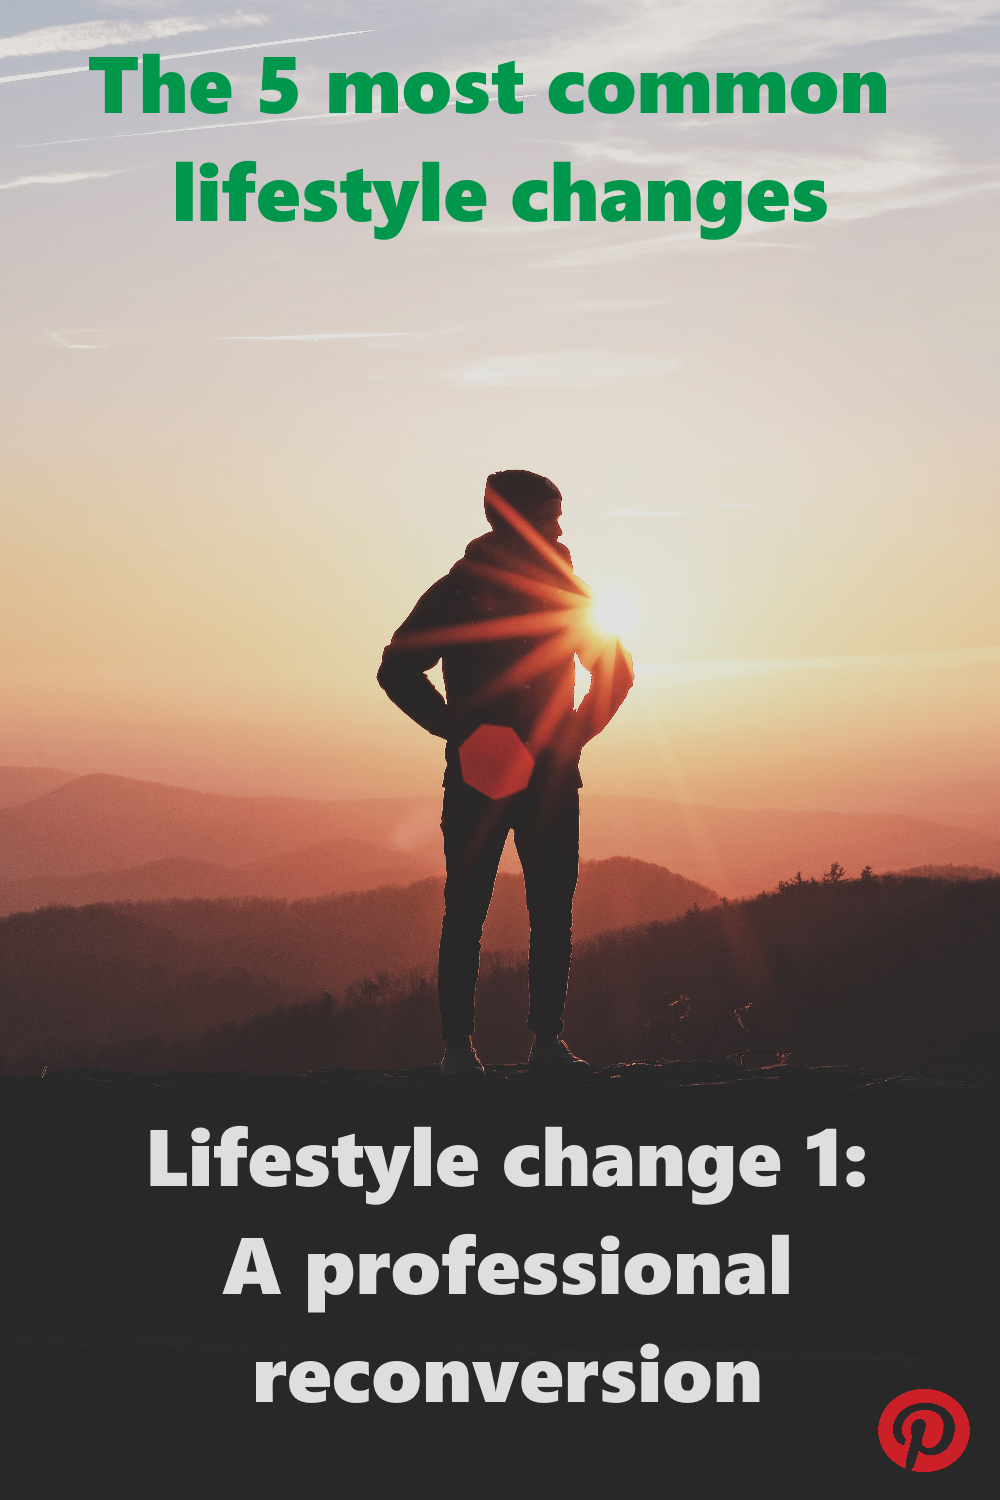 The 5 most common lifestyle changes - #1 A professional reconversion